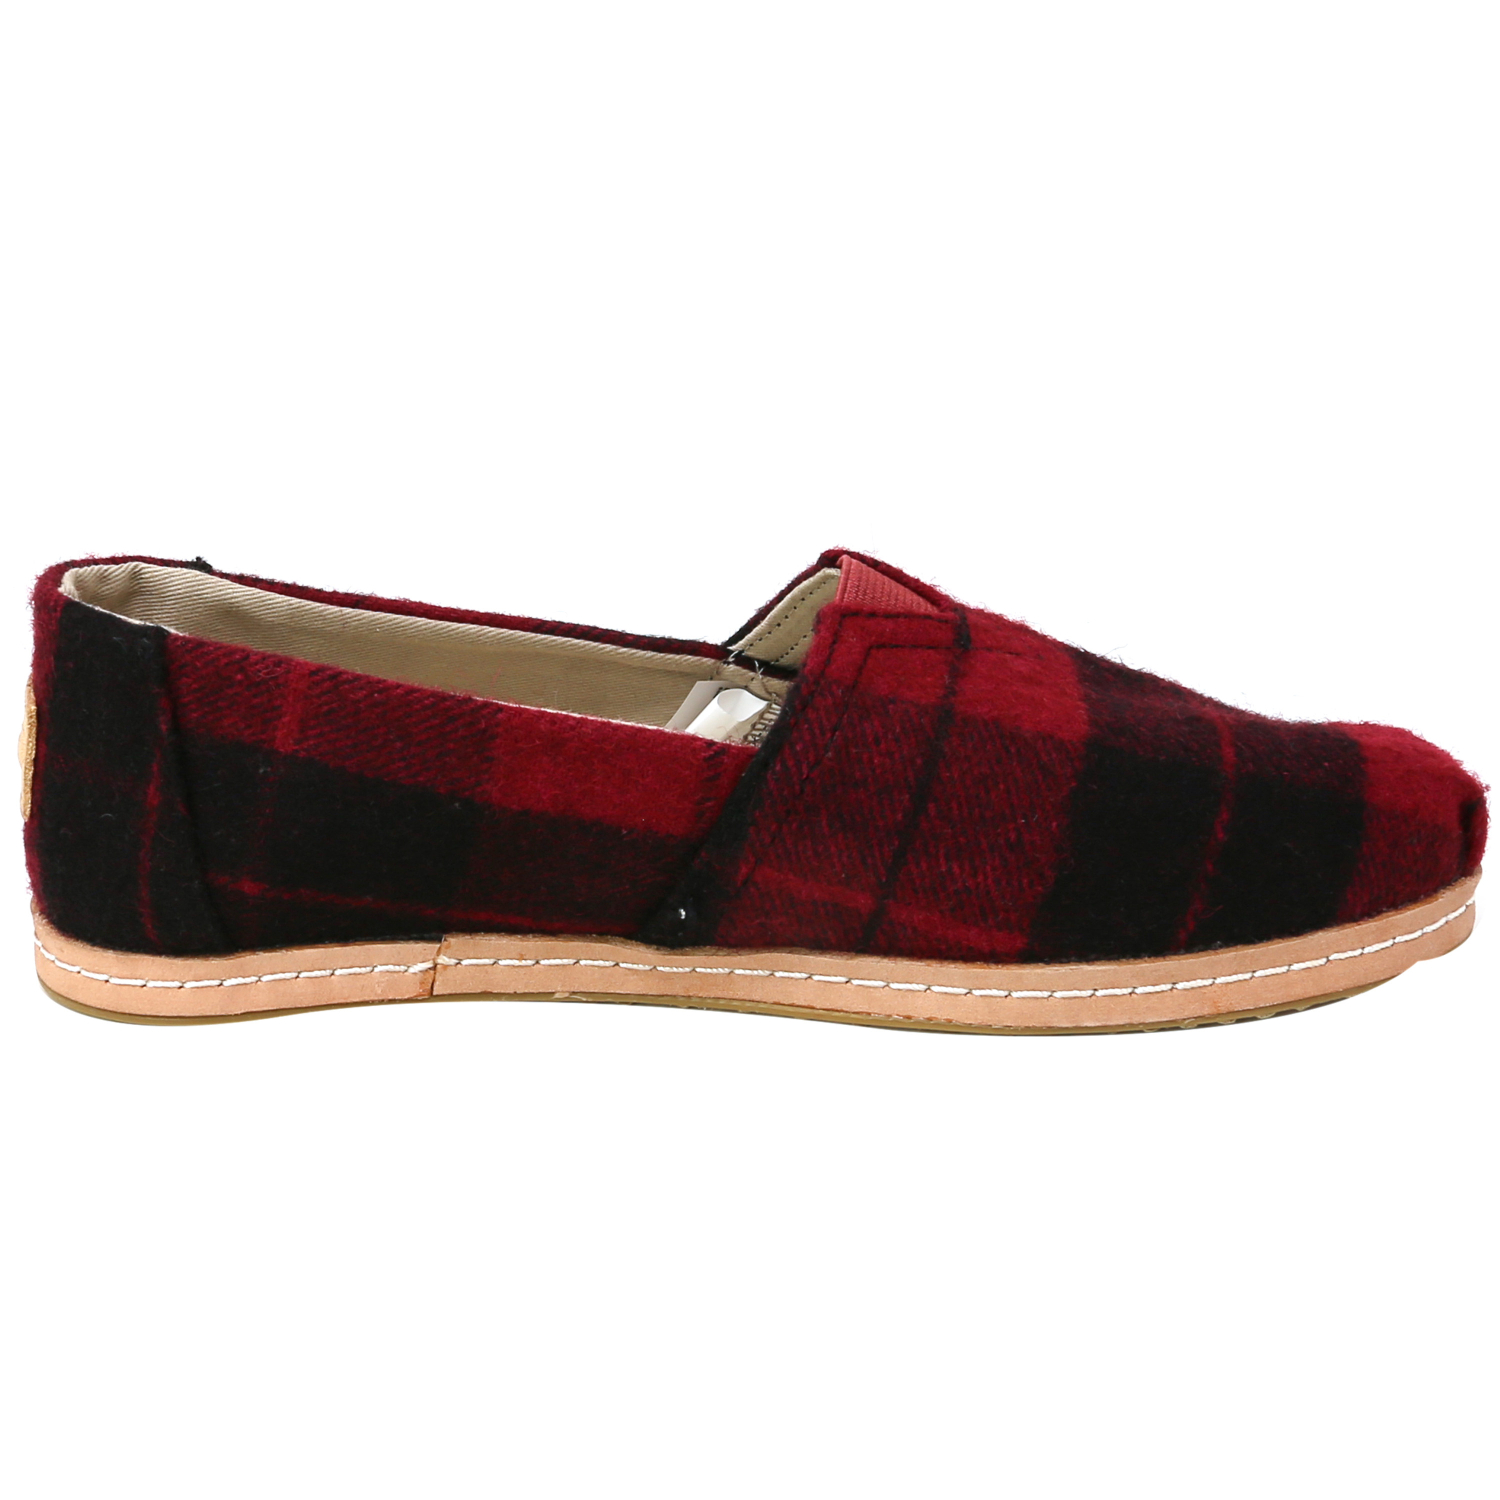 Toms-Women-039-s-Classic-Felt-On-Leather-Fabric-Slip-On-Shoes thumbnail 5